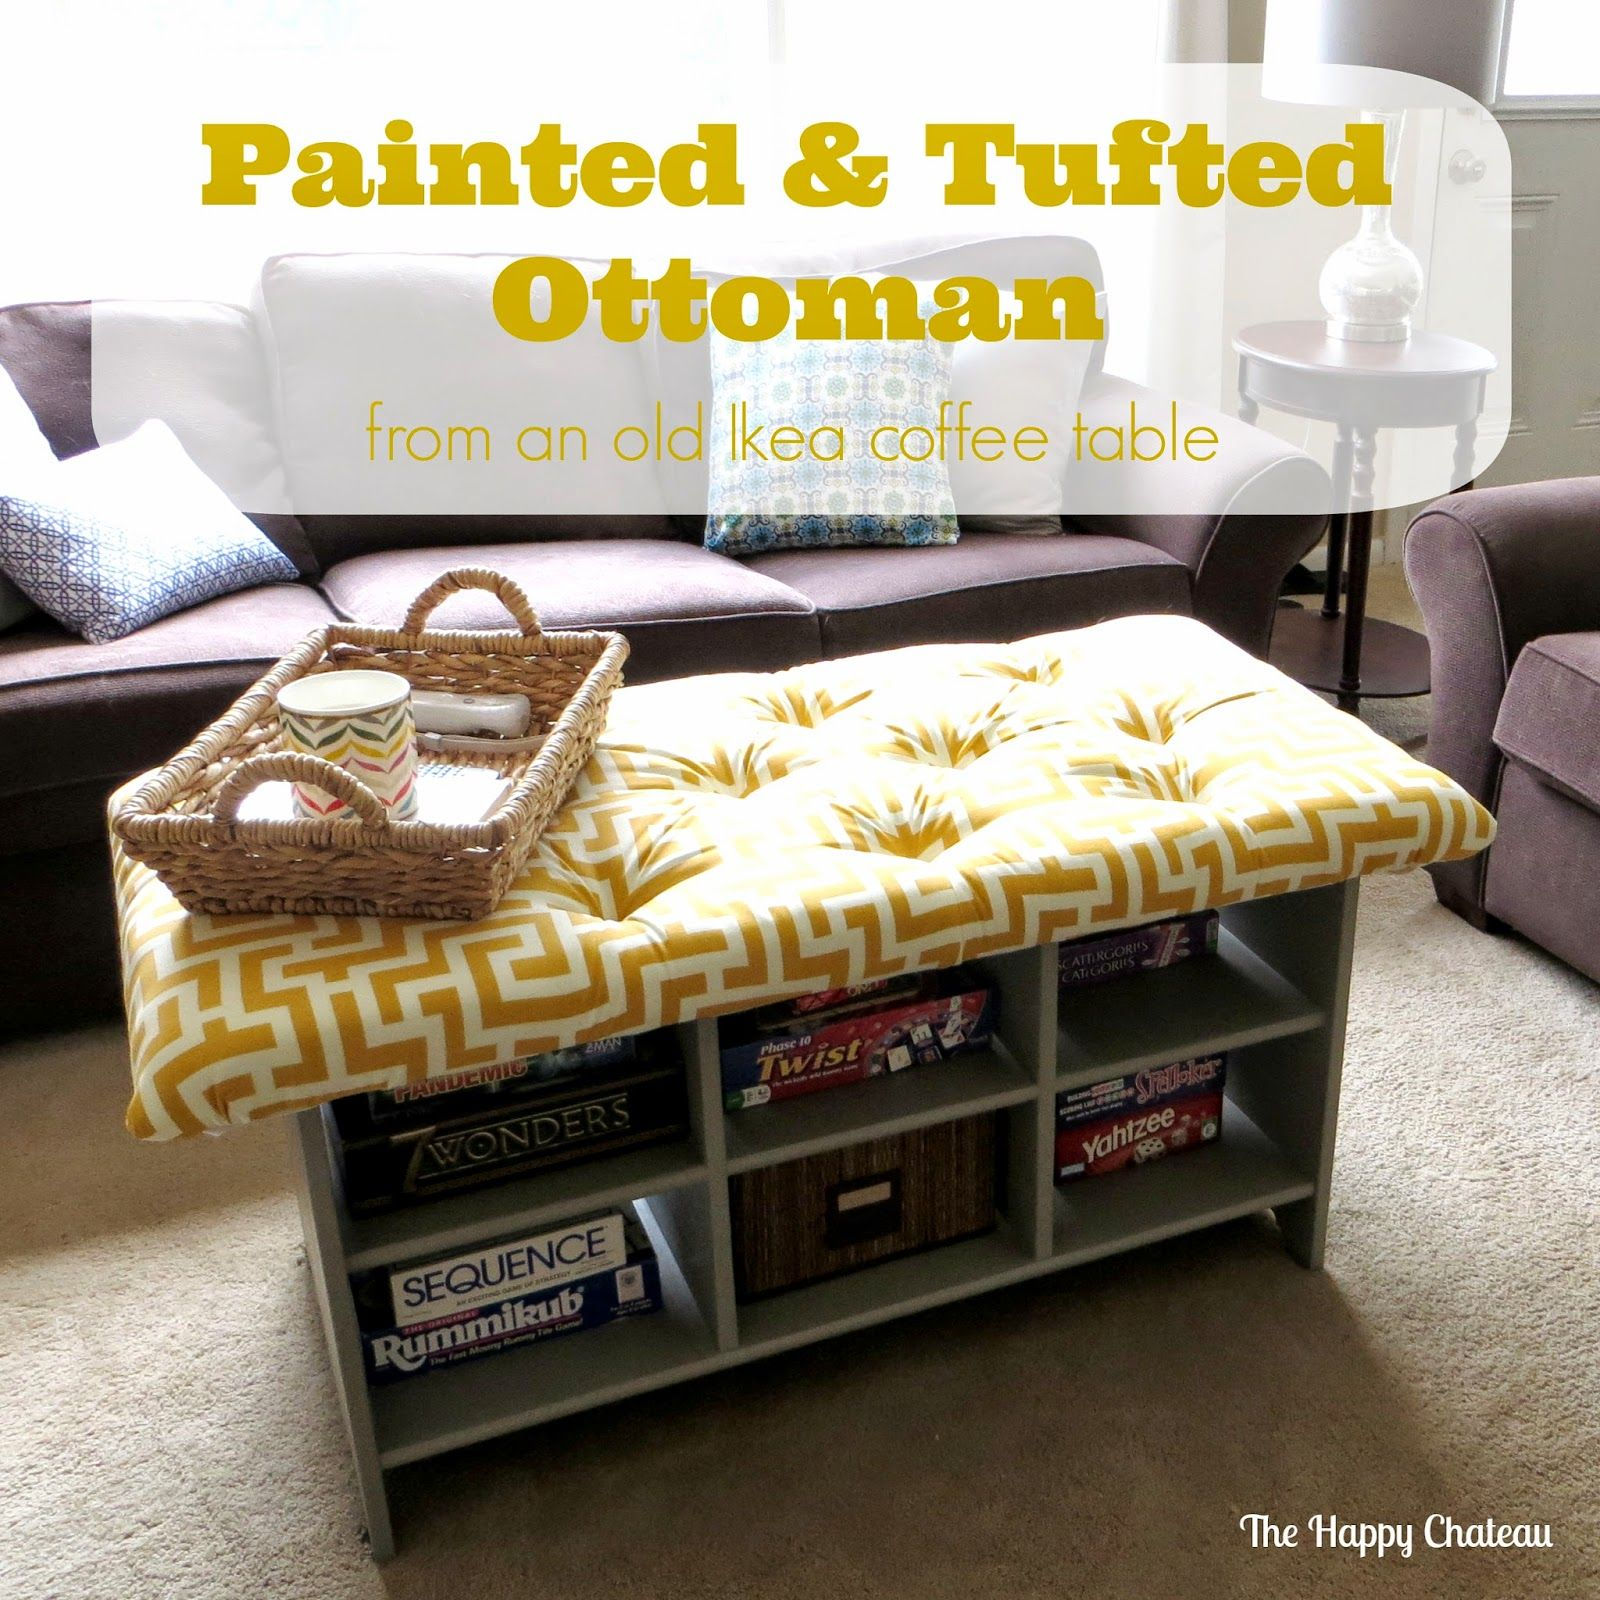 The Happy Chateau Painted & Tufted Ottoman from an old Ikea